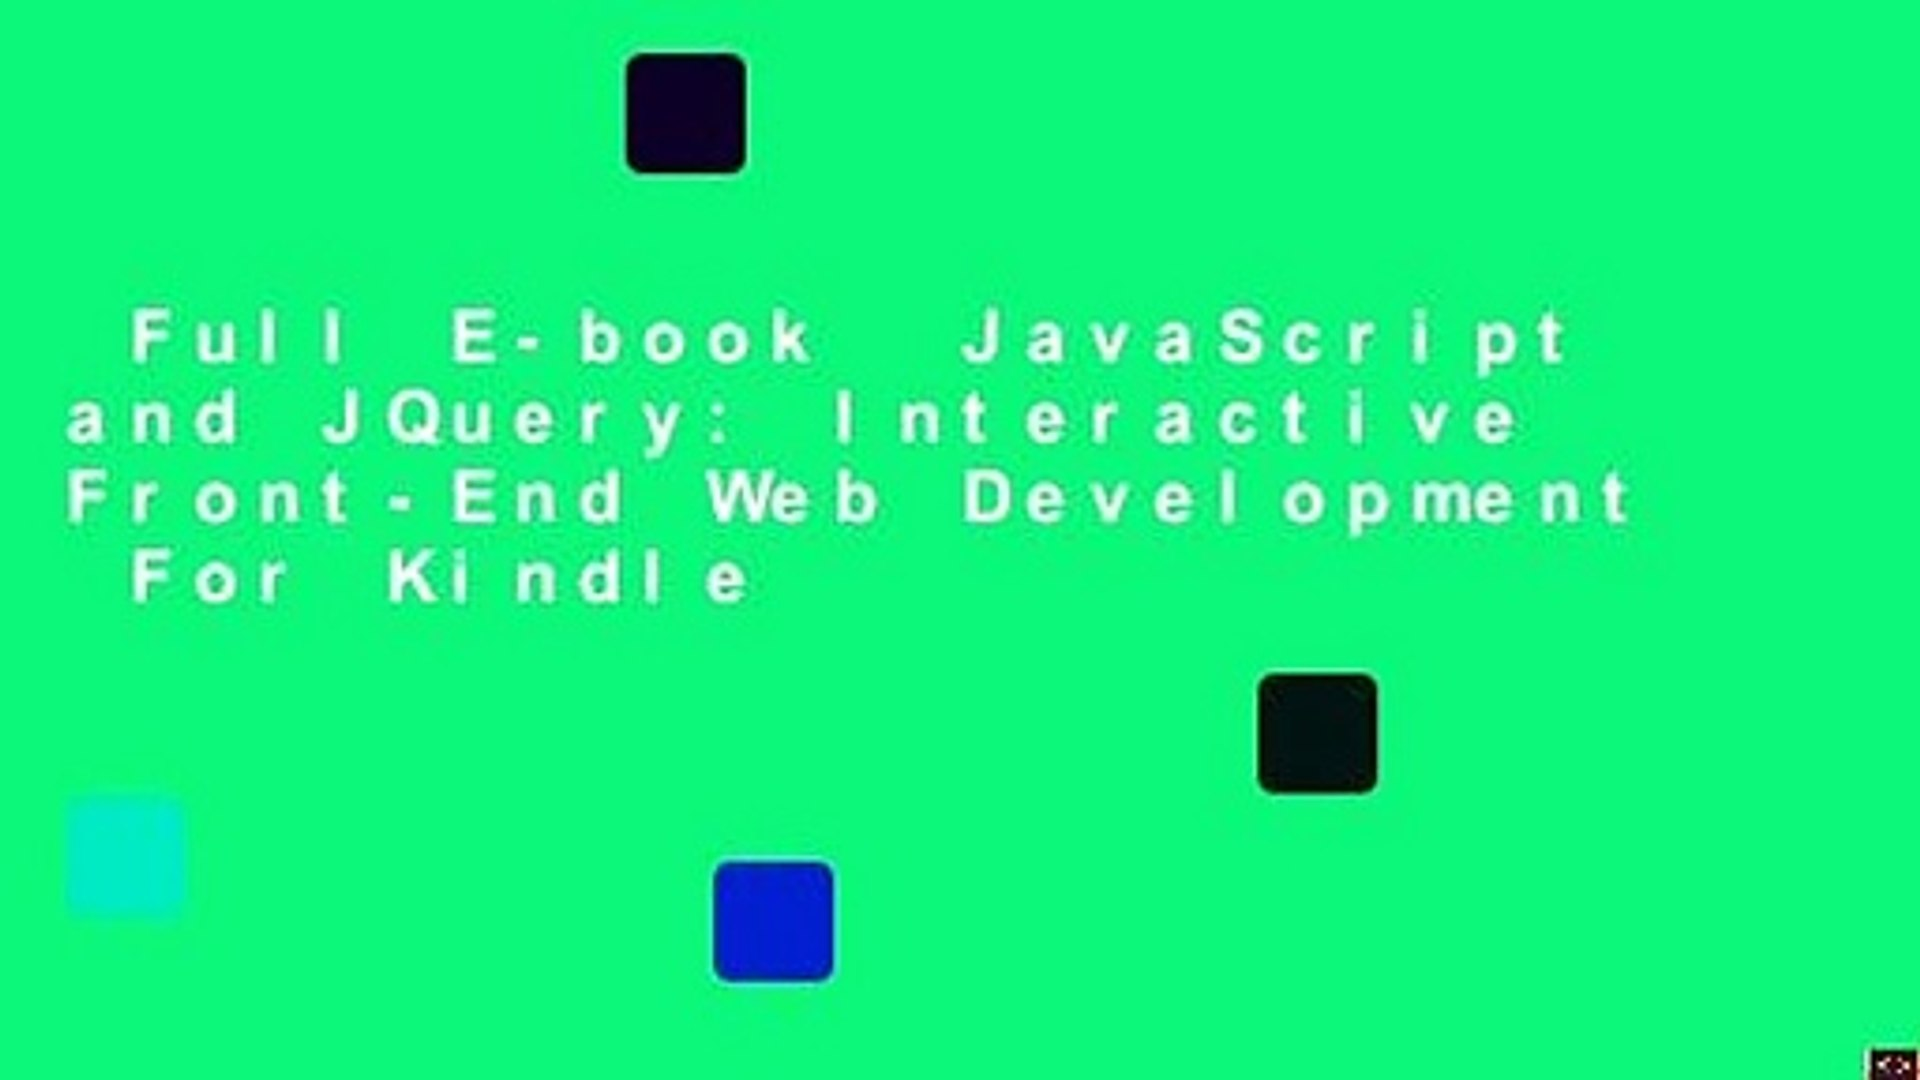 Full E-book  JavaScript and JQuery: Interactive Front-End Web Development  For Kindle